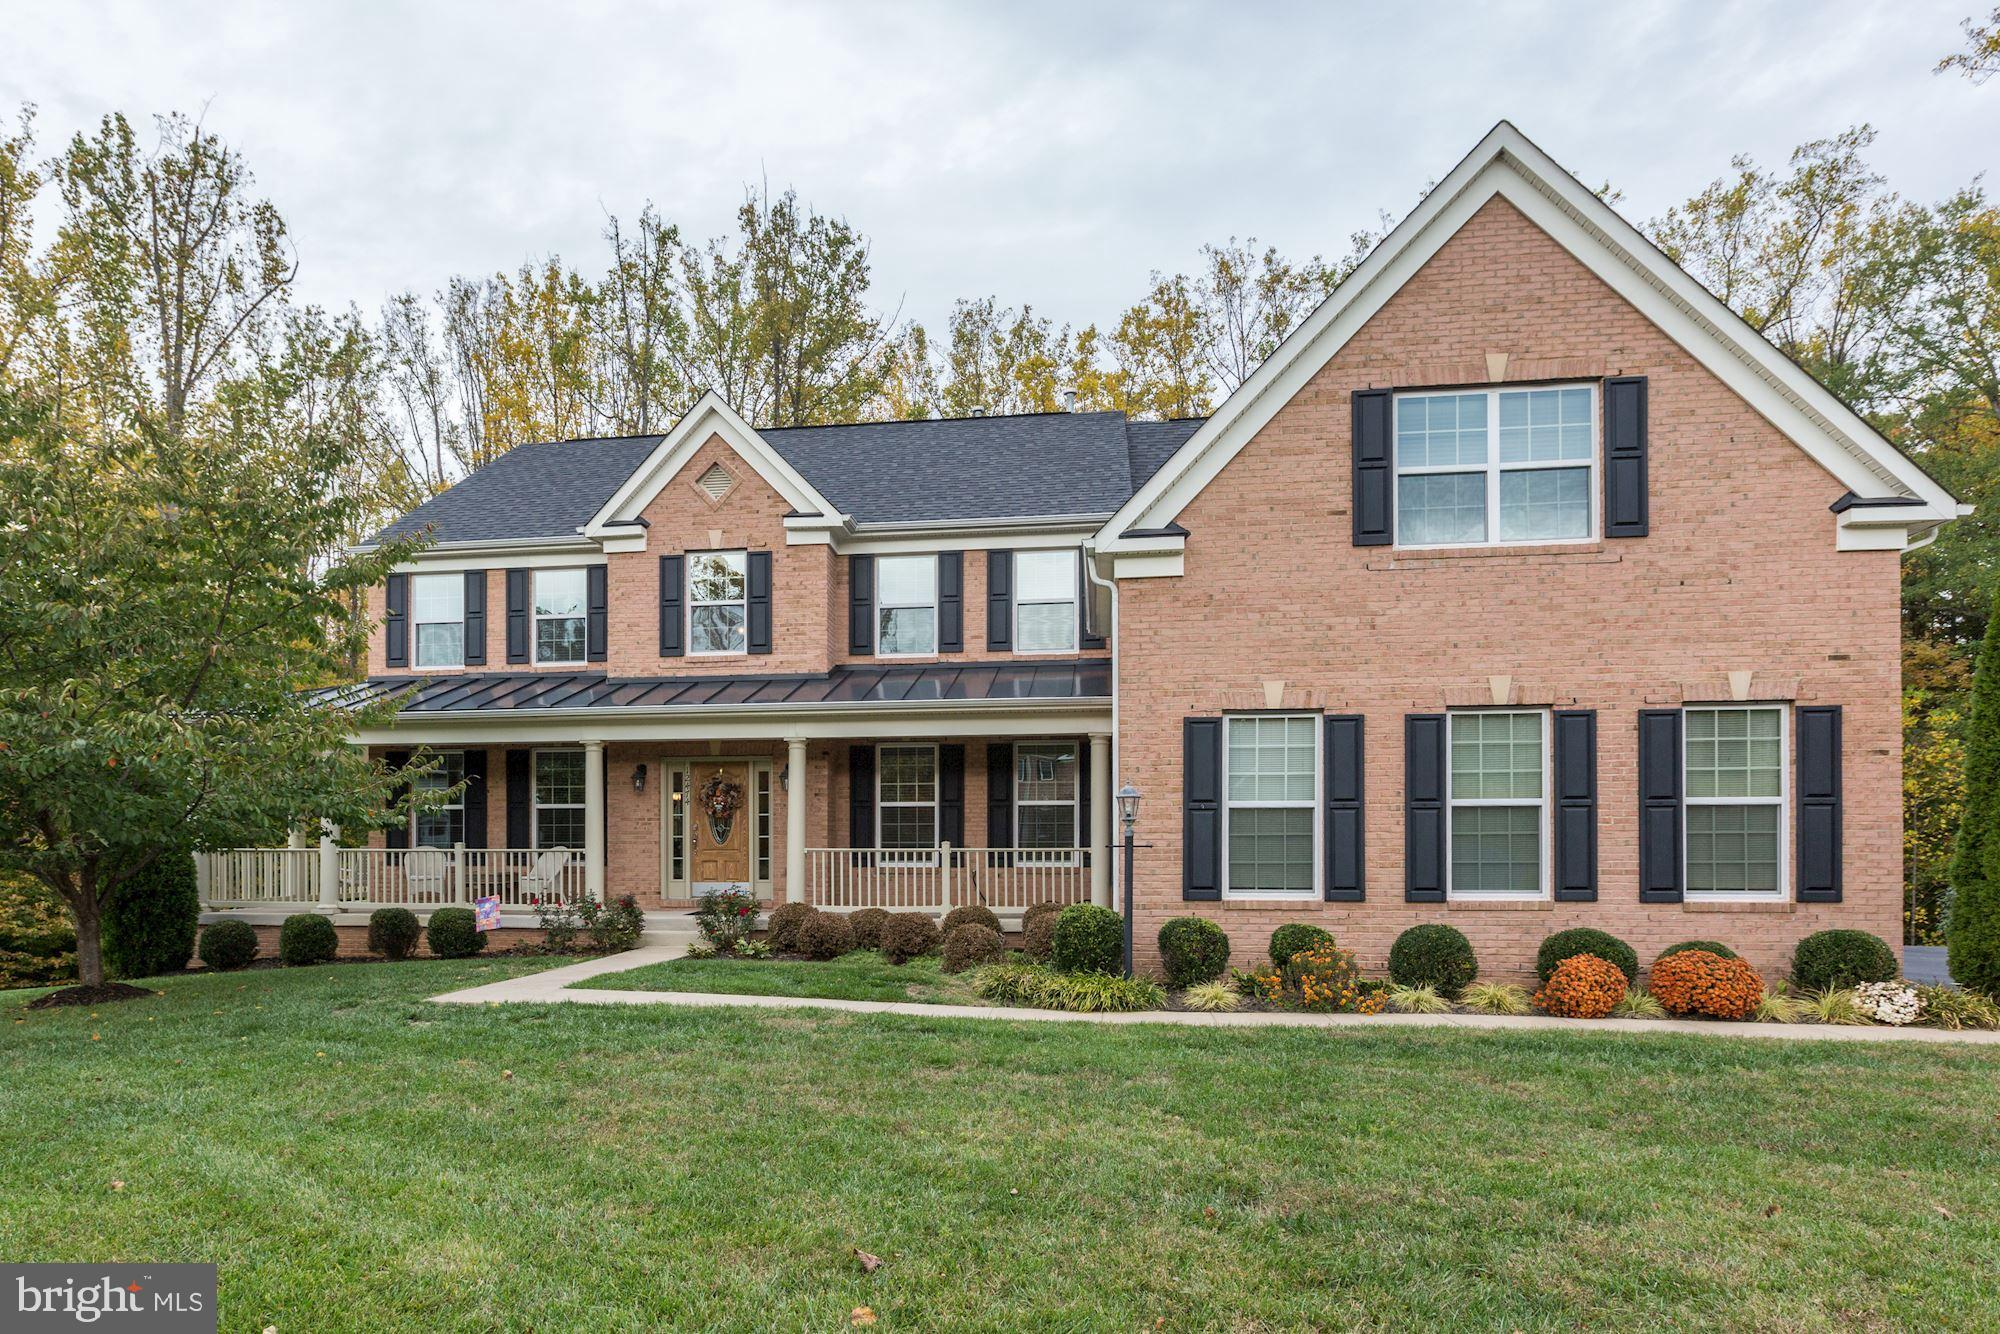 12474 PENDRAGON WAY, MANASSAS, VA 20112